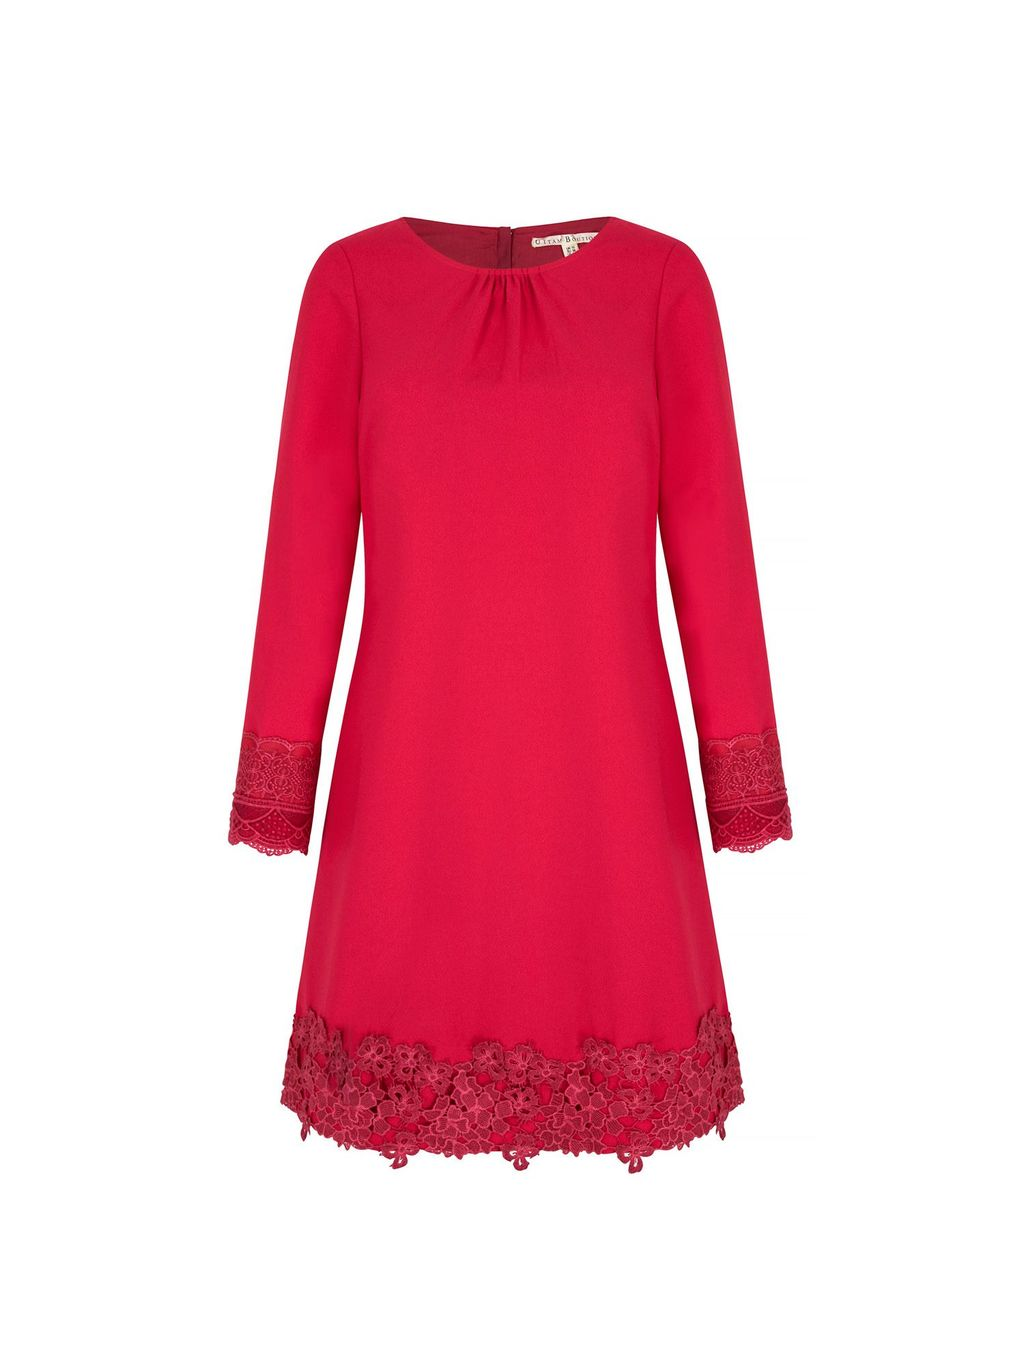 Long Sleeve Lace Shift Dress, Fuchsia - style: shift; length: mid thigh; pattern: plain; bust detail: ruching/gathering/draping/layers/pintuck pleats at bust; predominant colour: hot pink; fit: soft a-line; fibres: polyester/polyamide - 100%; occasions: occasion; neckline: crew; sleeve length: long sleeve; sleeve style: standard; texture group: crepes; pattern type: fabric; embellishment: lace; season: s/s 2016; wardrobe: event